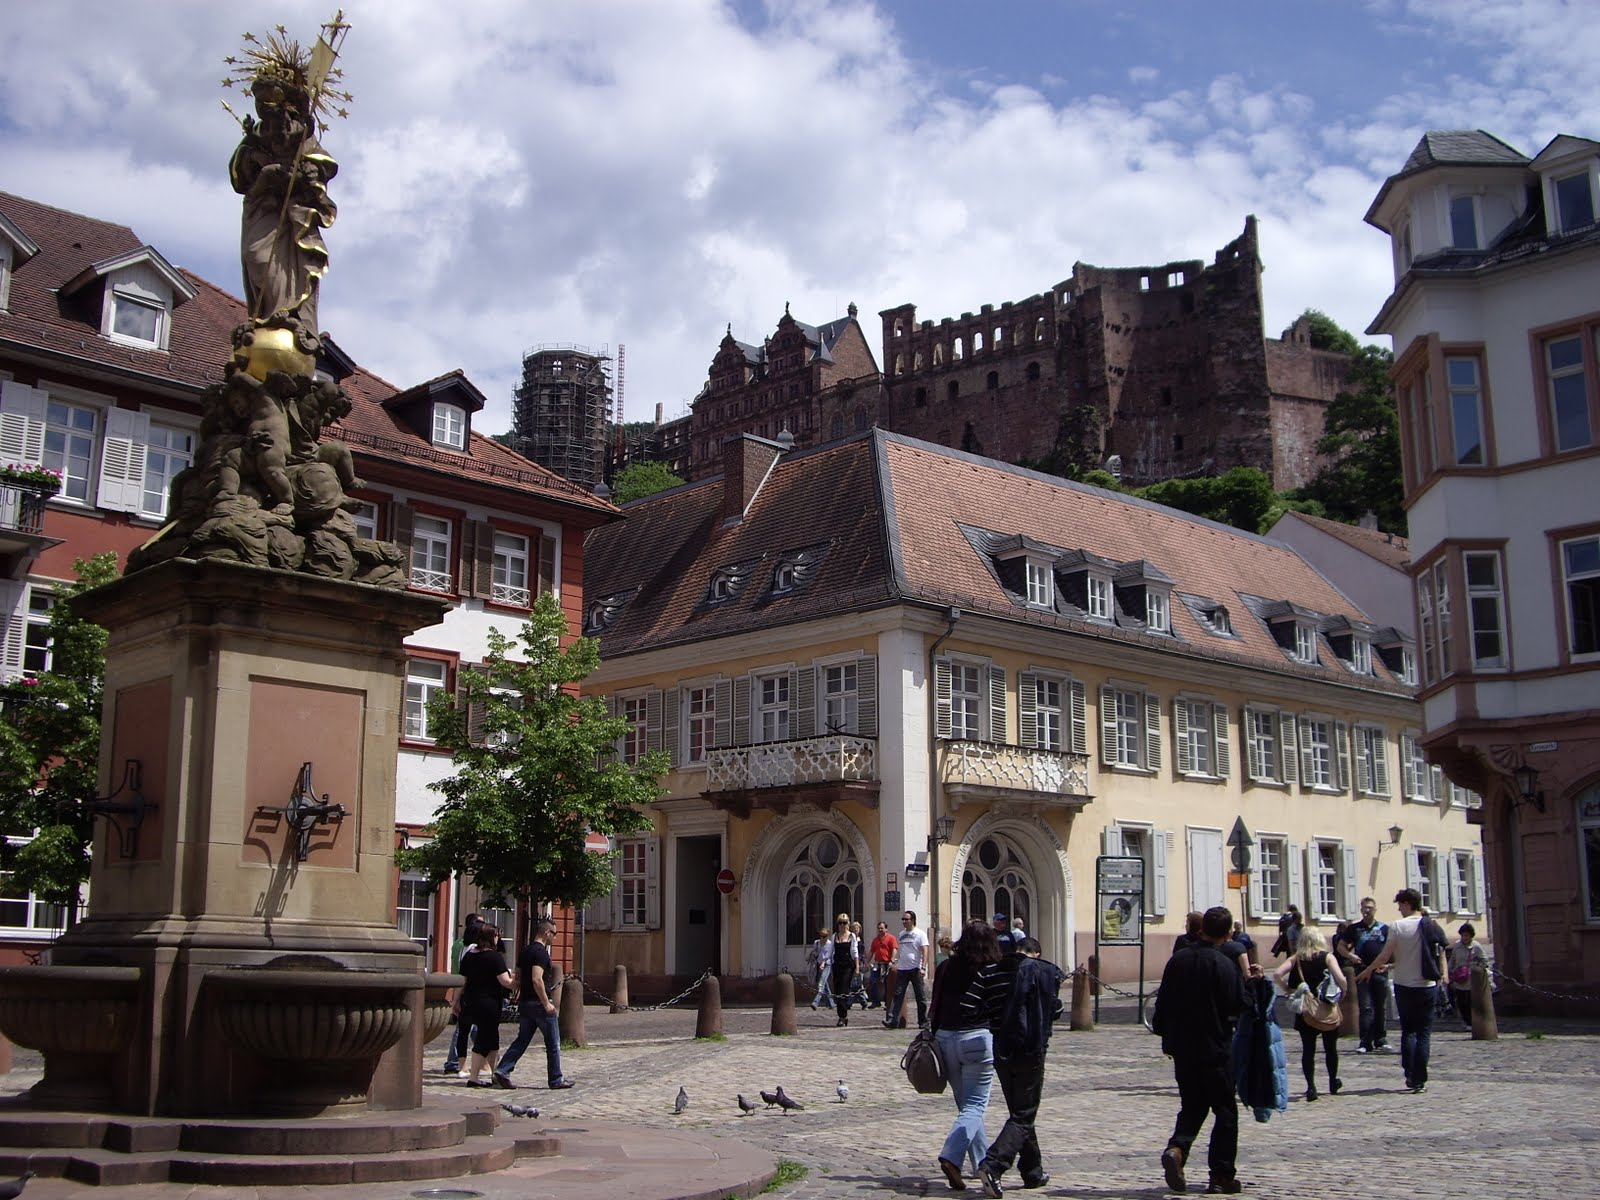 markt at the markt the old town square is the amazing heiliggeistkirche 1398 1441 a gothic. Black Bedroom Furniture Sets. Home Design Ideas